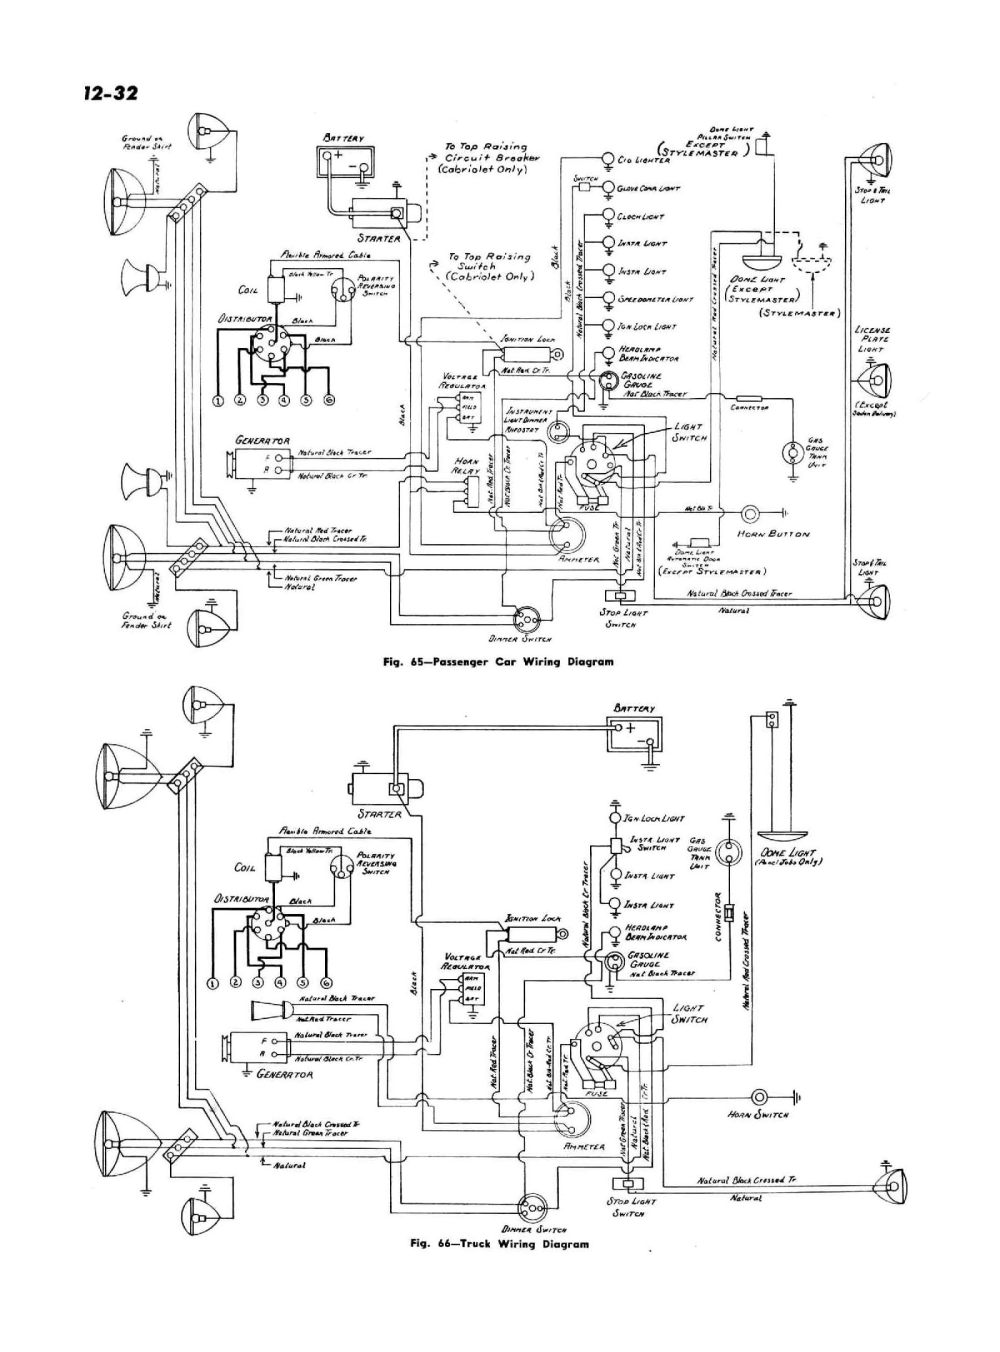 medium resolution of 1947 ford wiring diagram wiring diagram third level rh 1 14 jacobwinterstein com 64 ford headlight switch diagram 64 ford headlight switch wiring